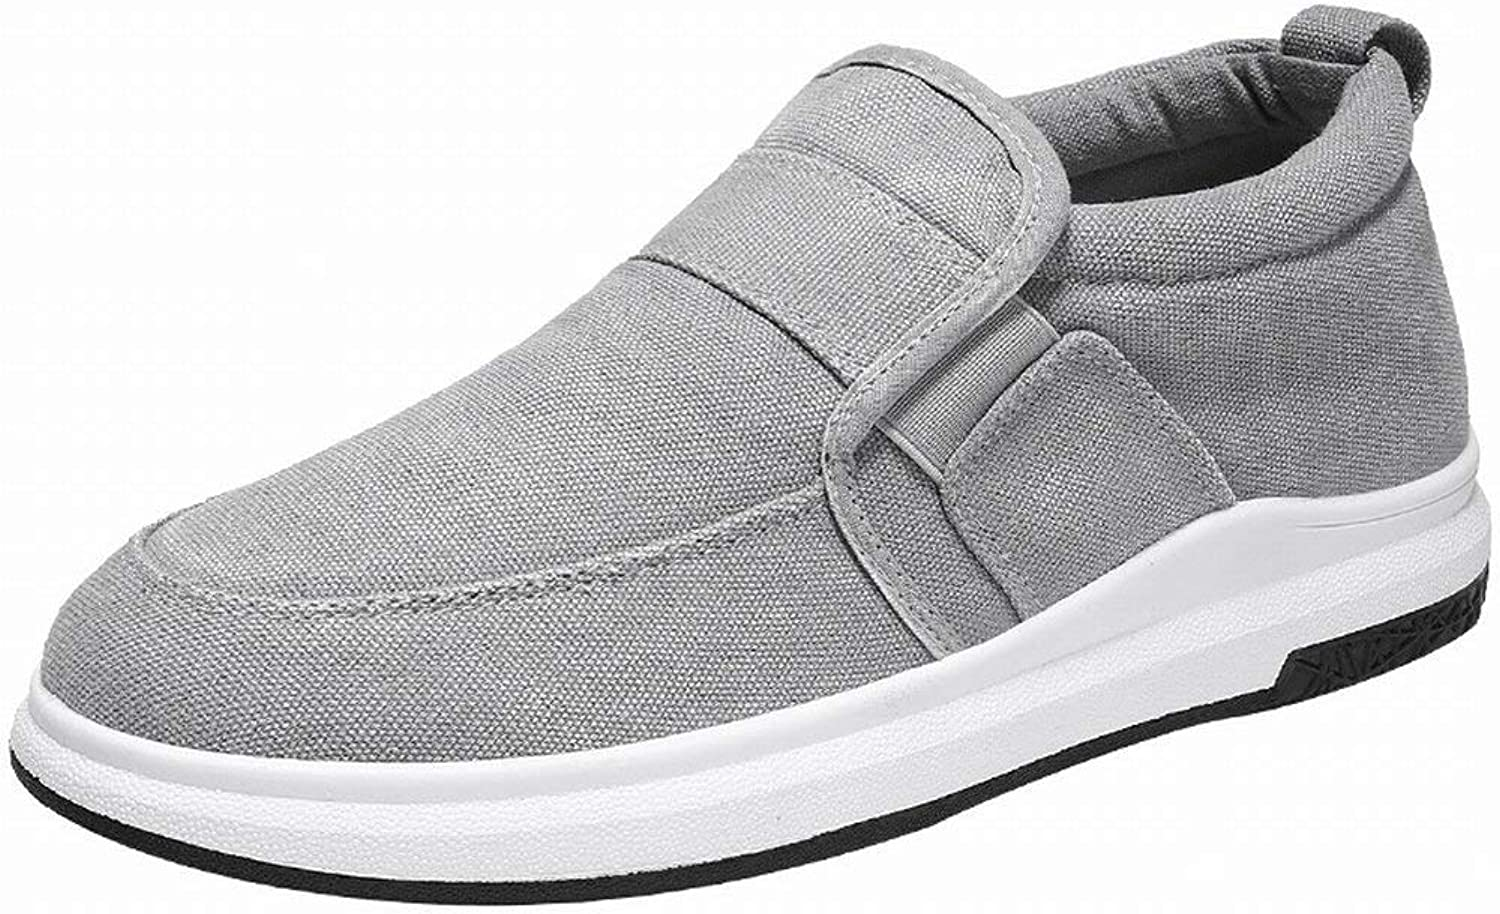 Fuxitoggo Fashion Canvas shoes Comfortable Breathable Casual shoes Slip Wear Men shoes All-match tide shoes (color   Grey, Size   42)